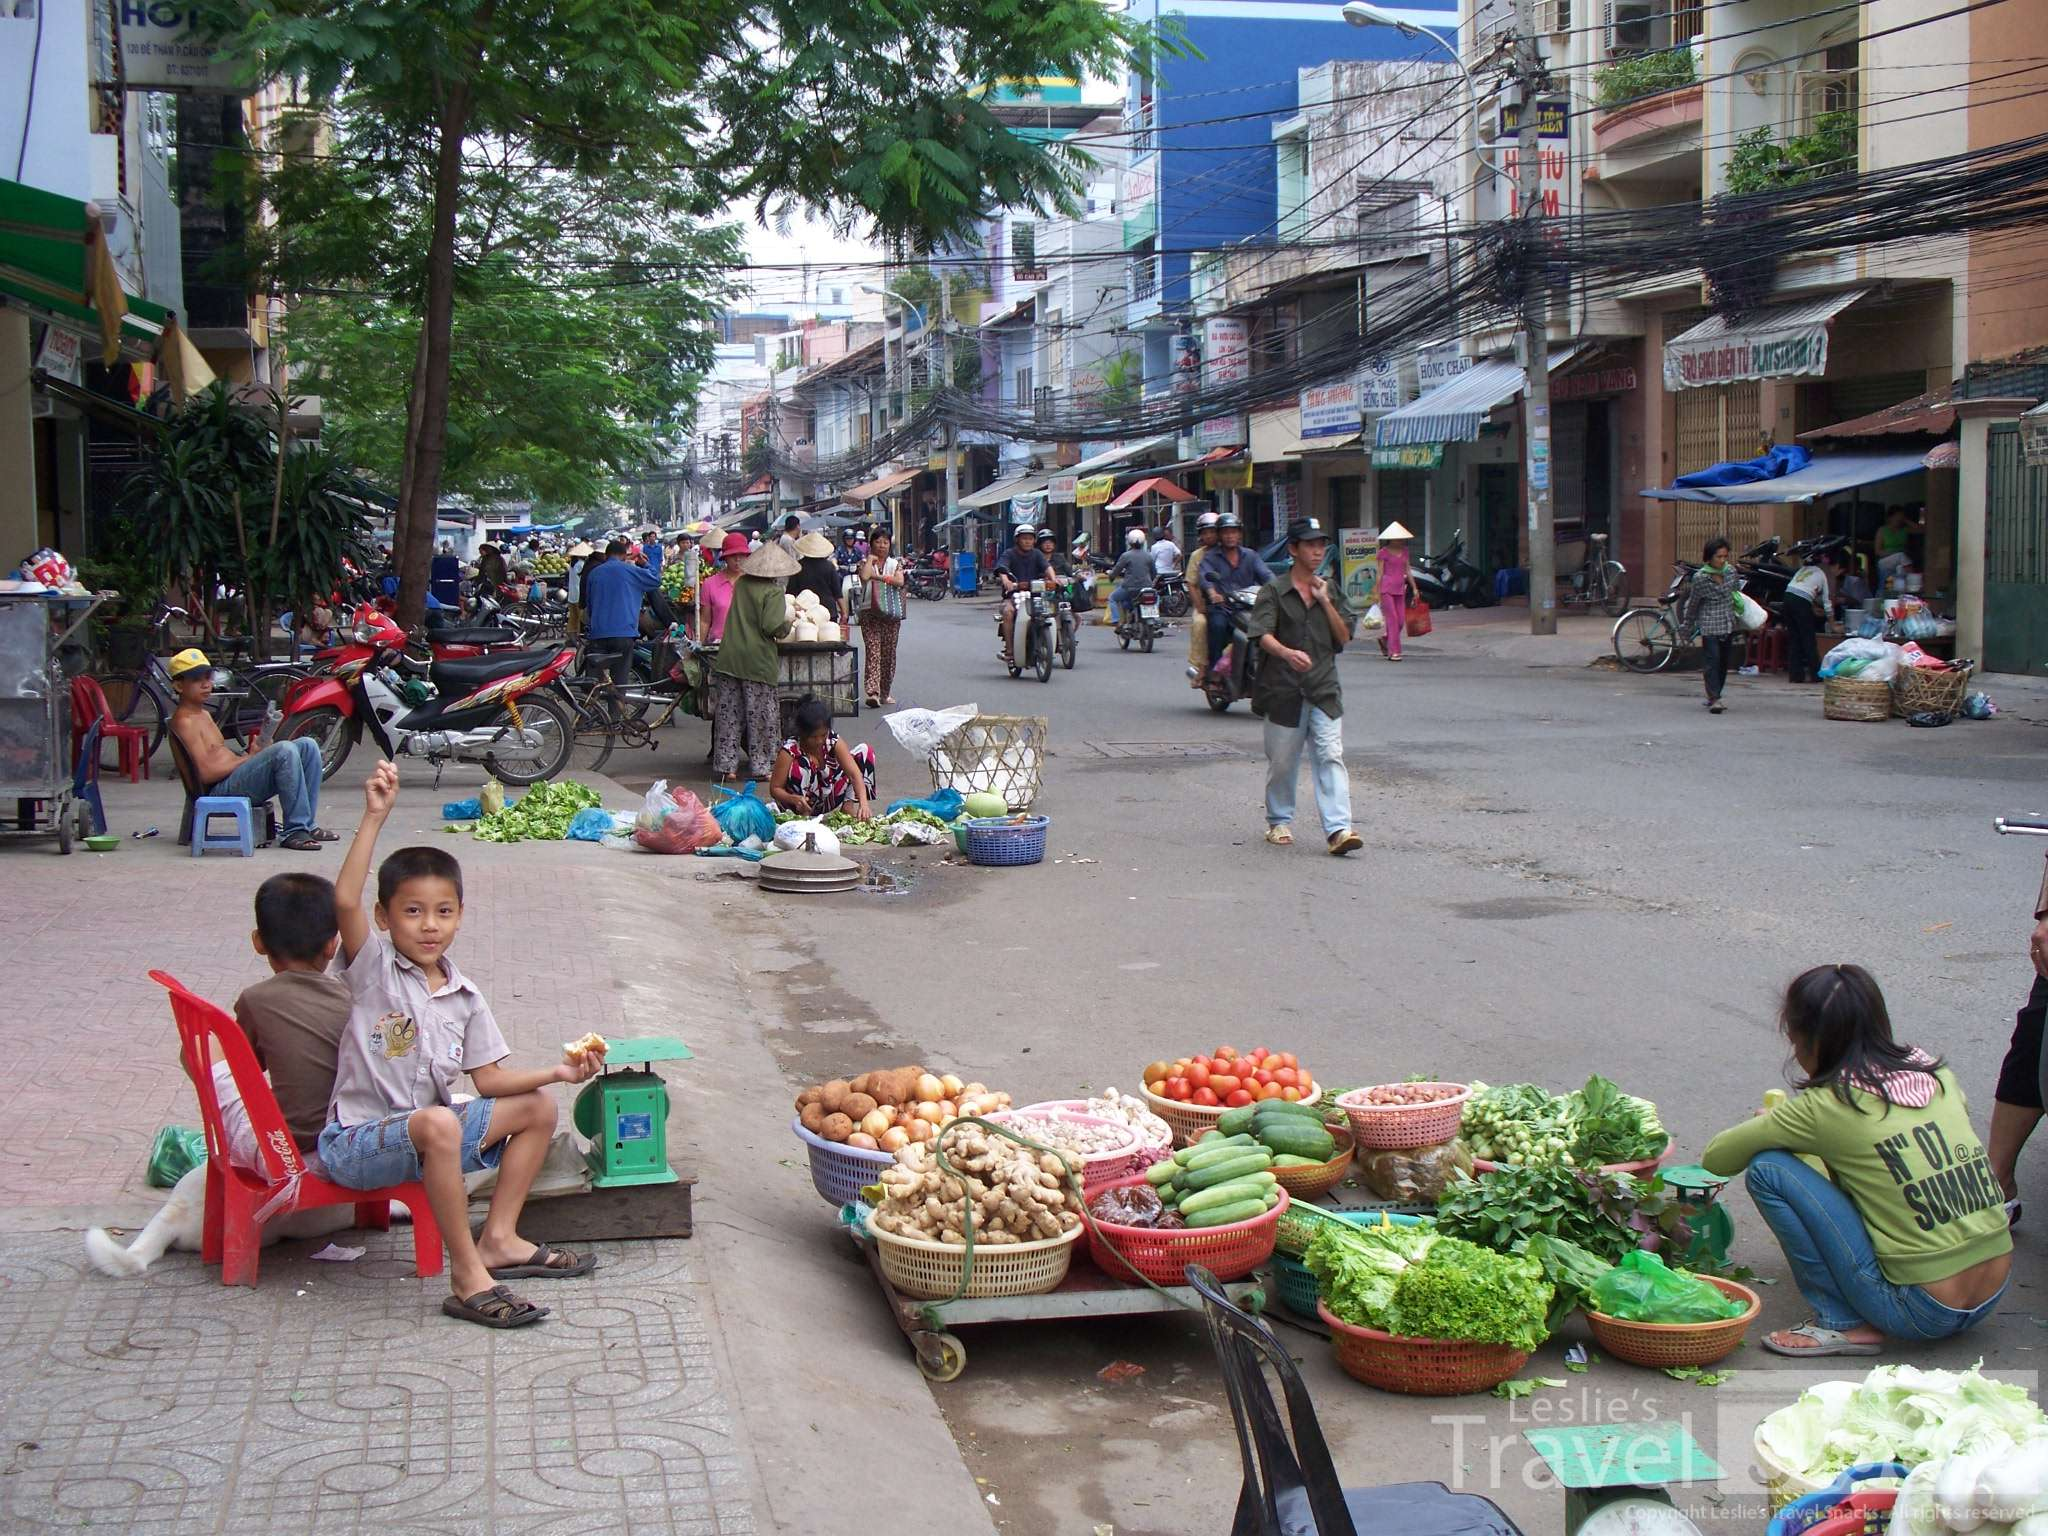 Just another busy street in Saigon.